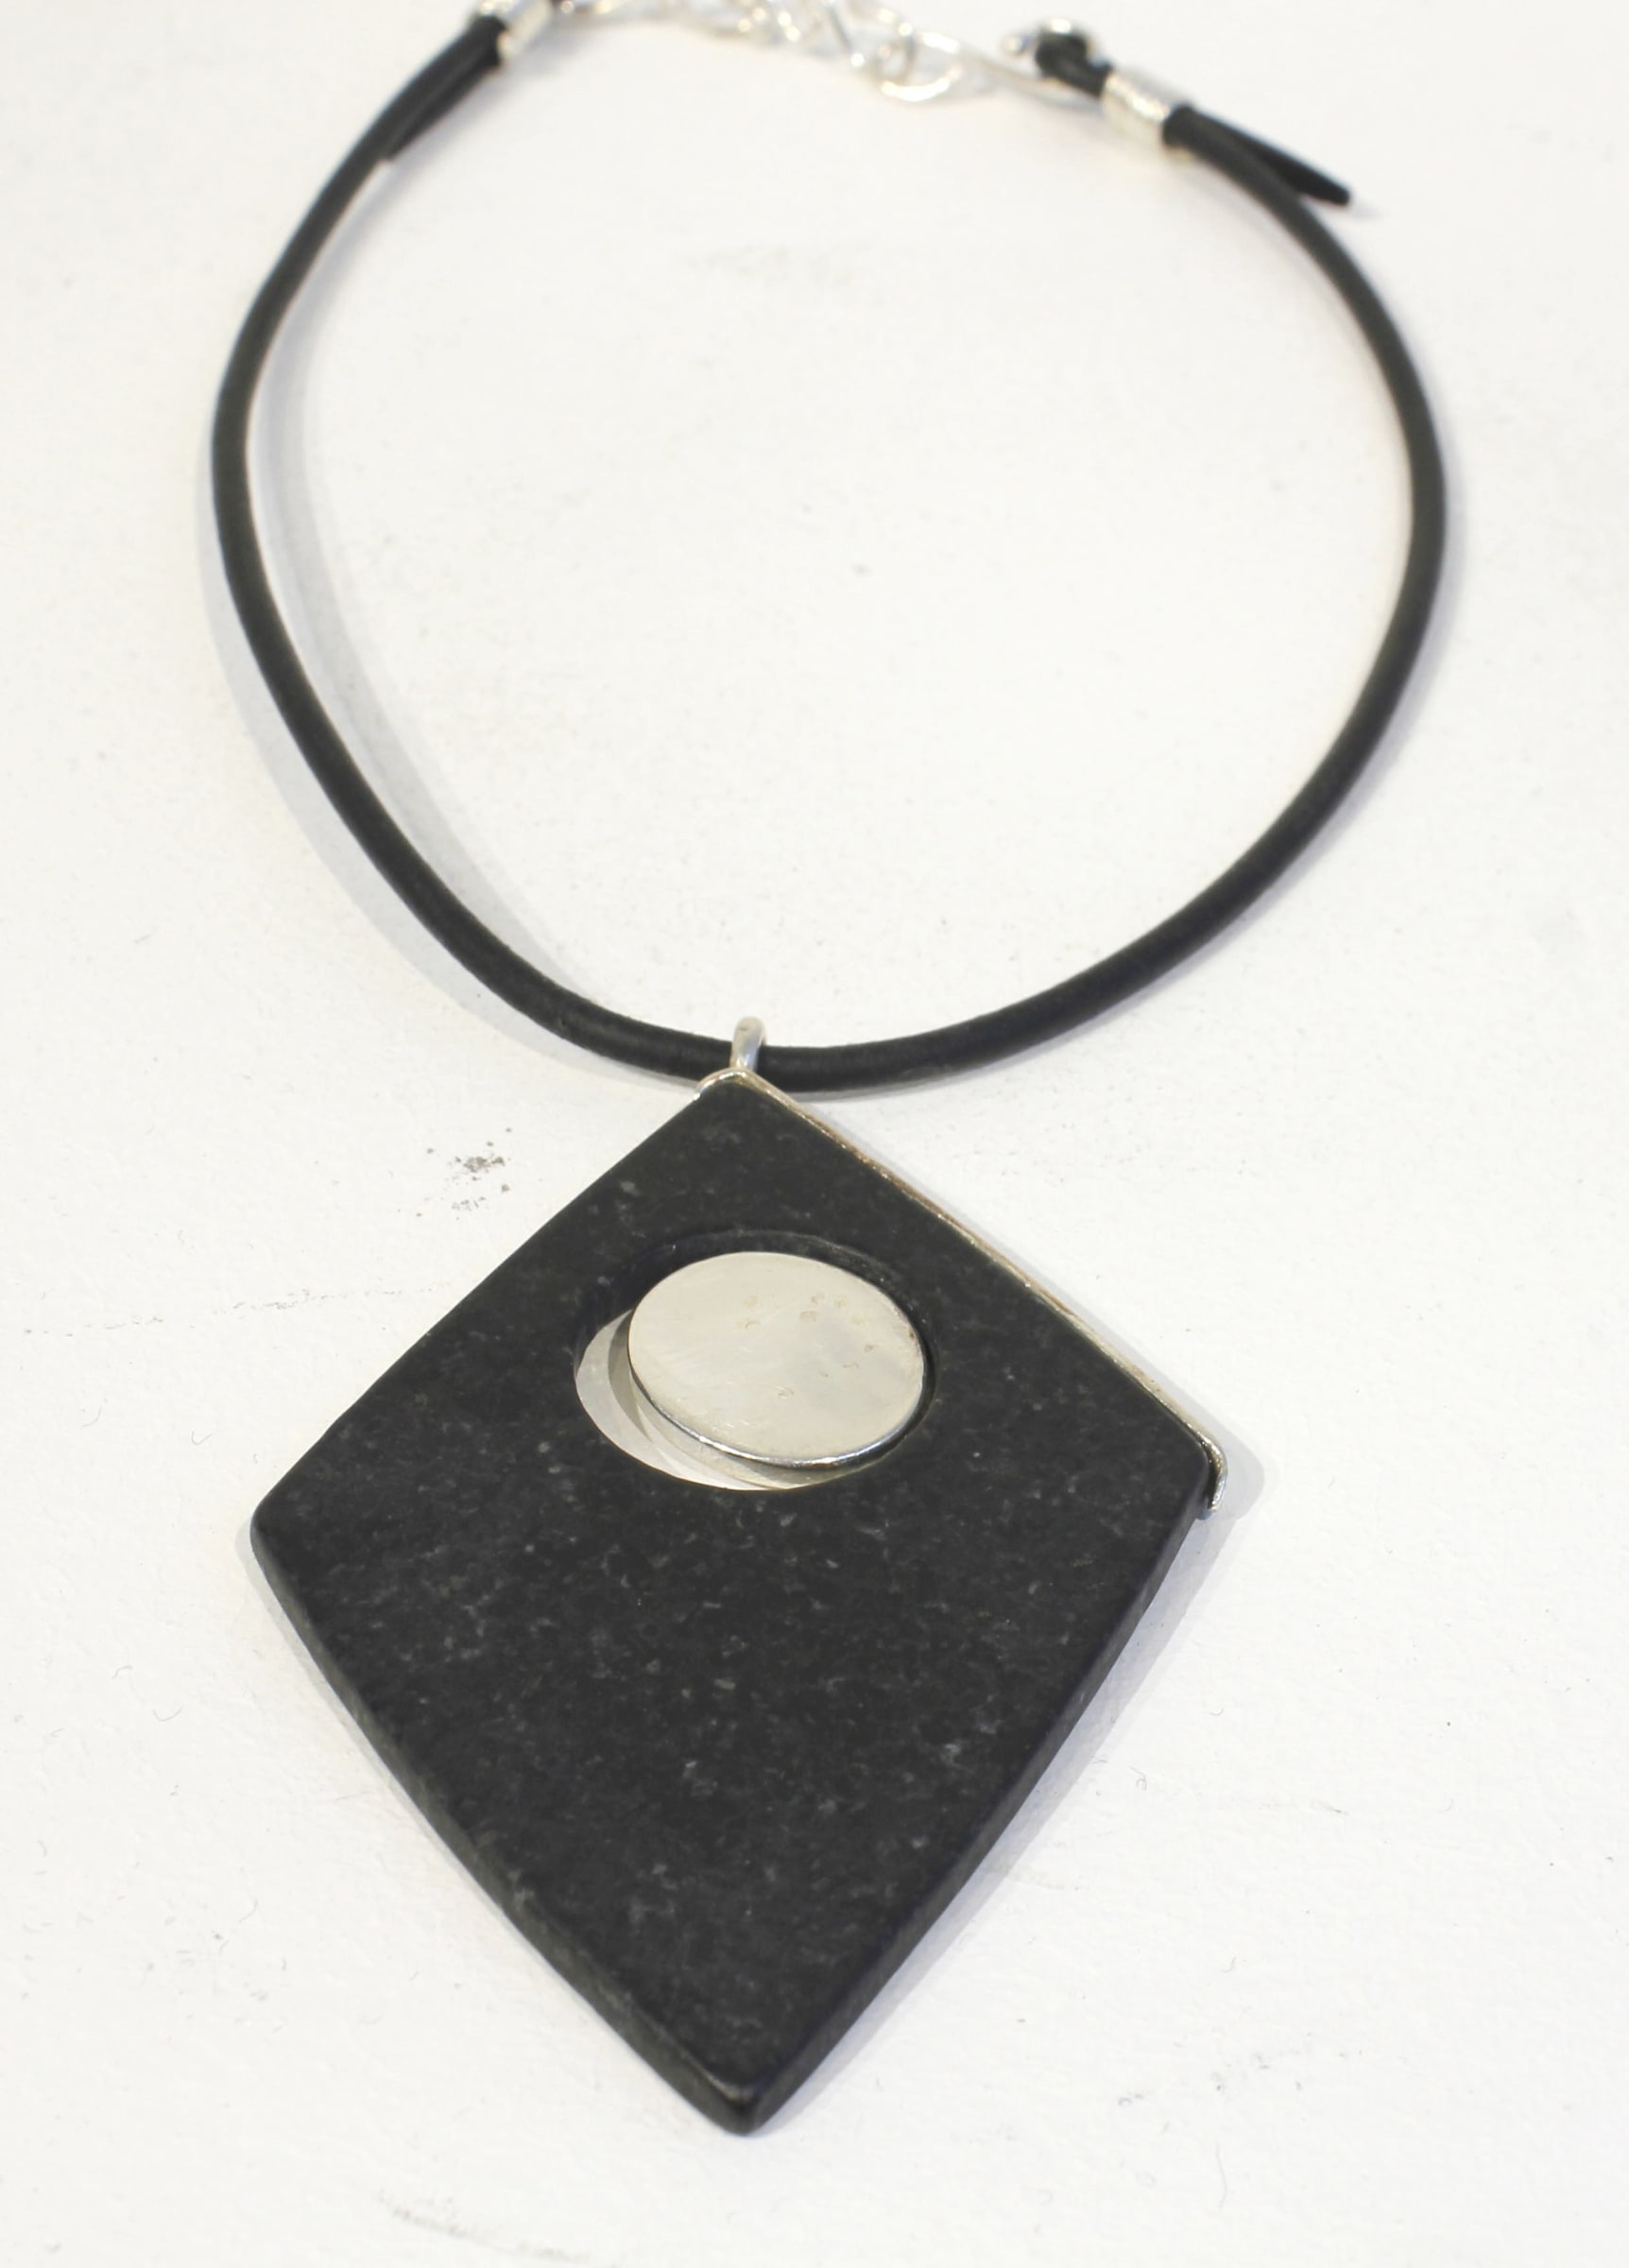 "<span class=""link fancybox-details-link""><a href=""/artists/186-helen-feiler/works/4632-helen-feiler-pendeen-granite-pendant/"">View Detail Page</a></span><div class=""artist""><strong>Helen Feiler</strong></div> <div class=""title""><em>Pendeen Granite Pendant </em></div> <div class=""medium"">Silver and Granite </div><div class=""price"">£250.00</div><div class=""copyright_line"">OwnArt: £ 25 x 10 Months, 0% APR</div>"